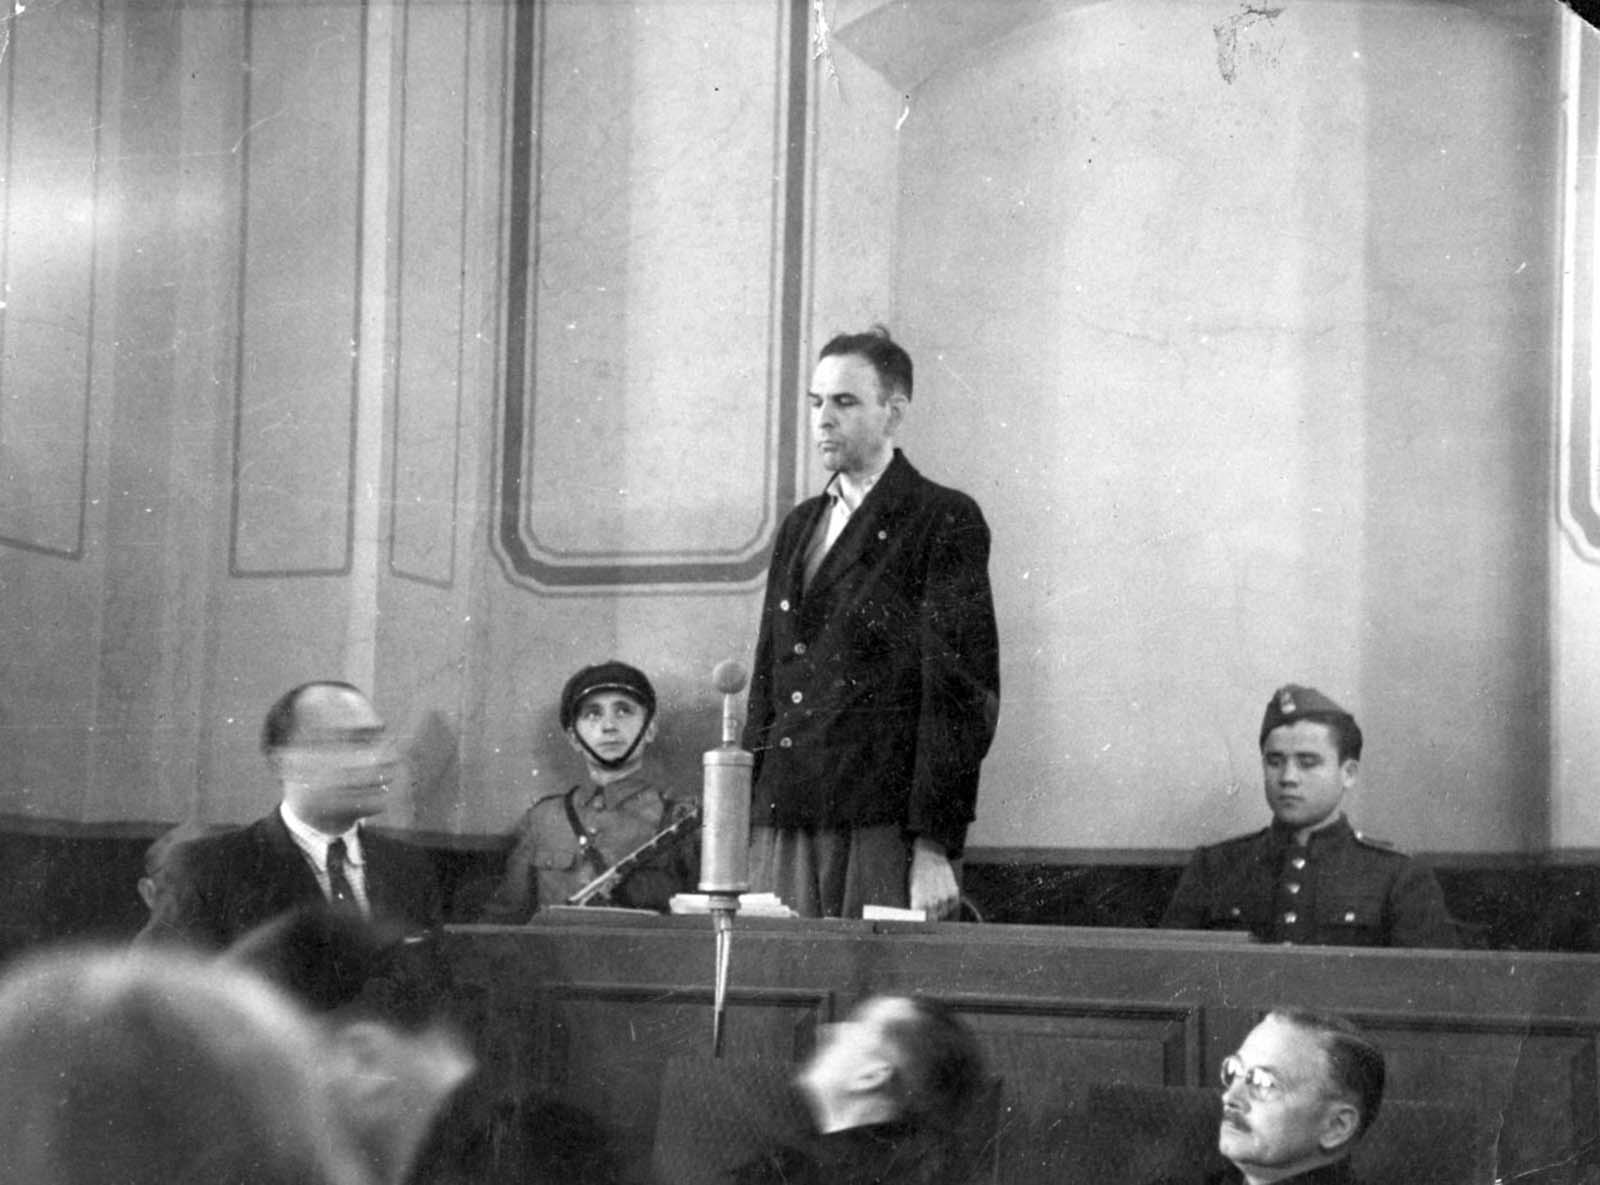 Amon Goeth during his trial, 1946.